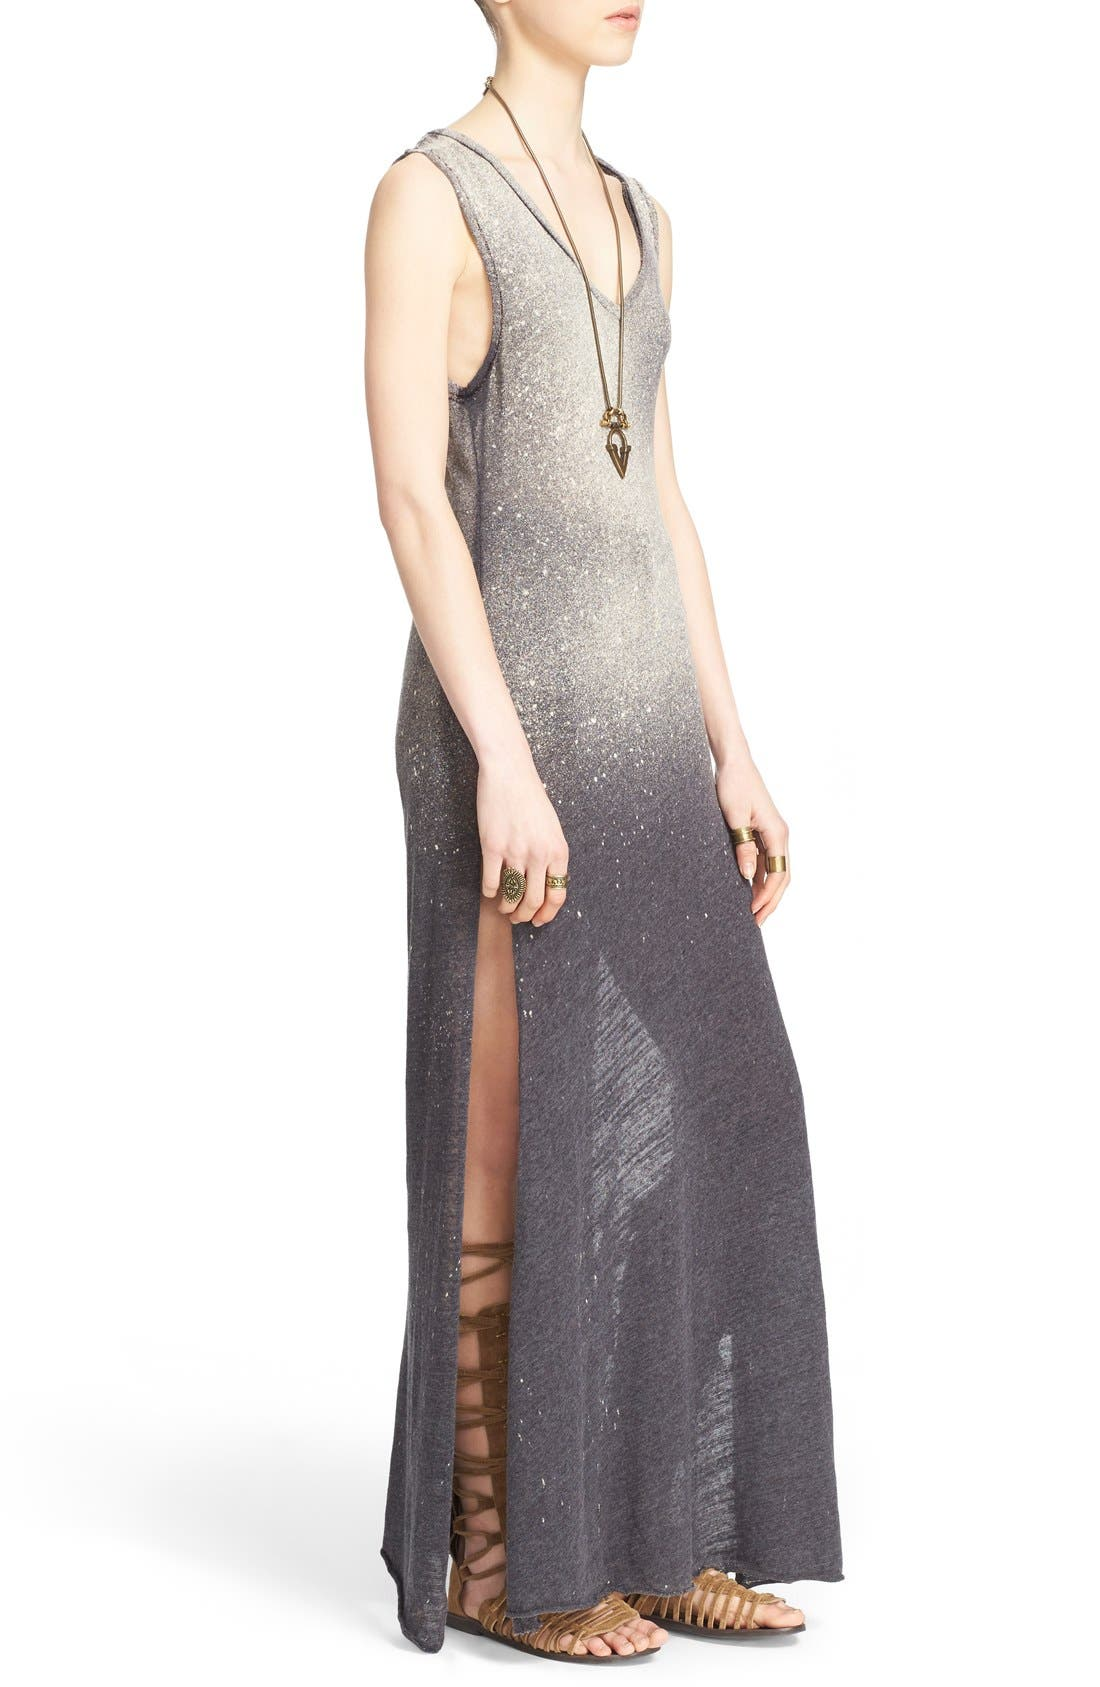 FREE PEOPLE,                             'Galaxy' Maxi Dress,                             Alternate thumbnail 2, color,                             001